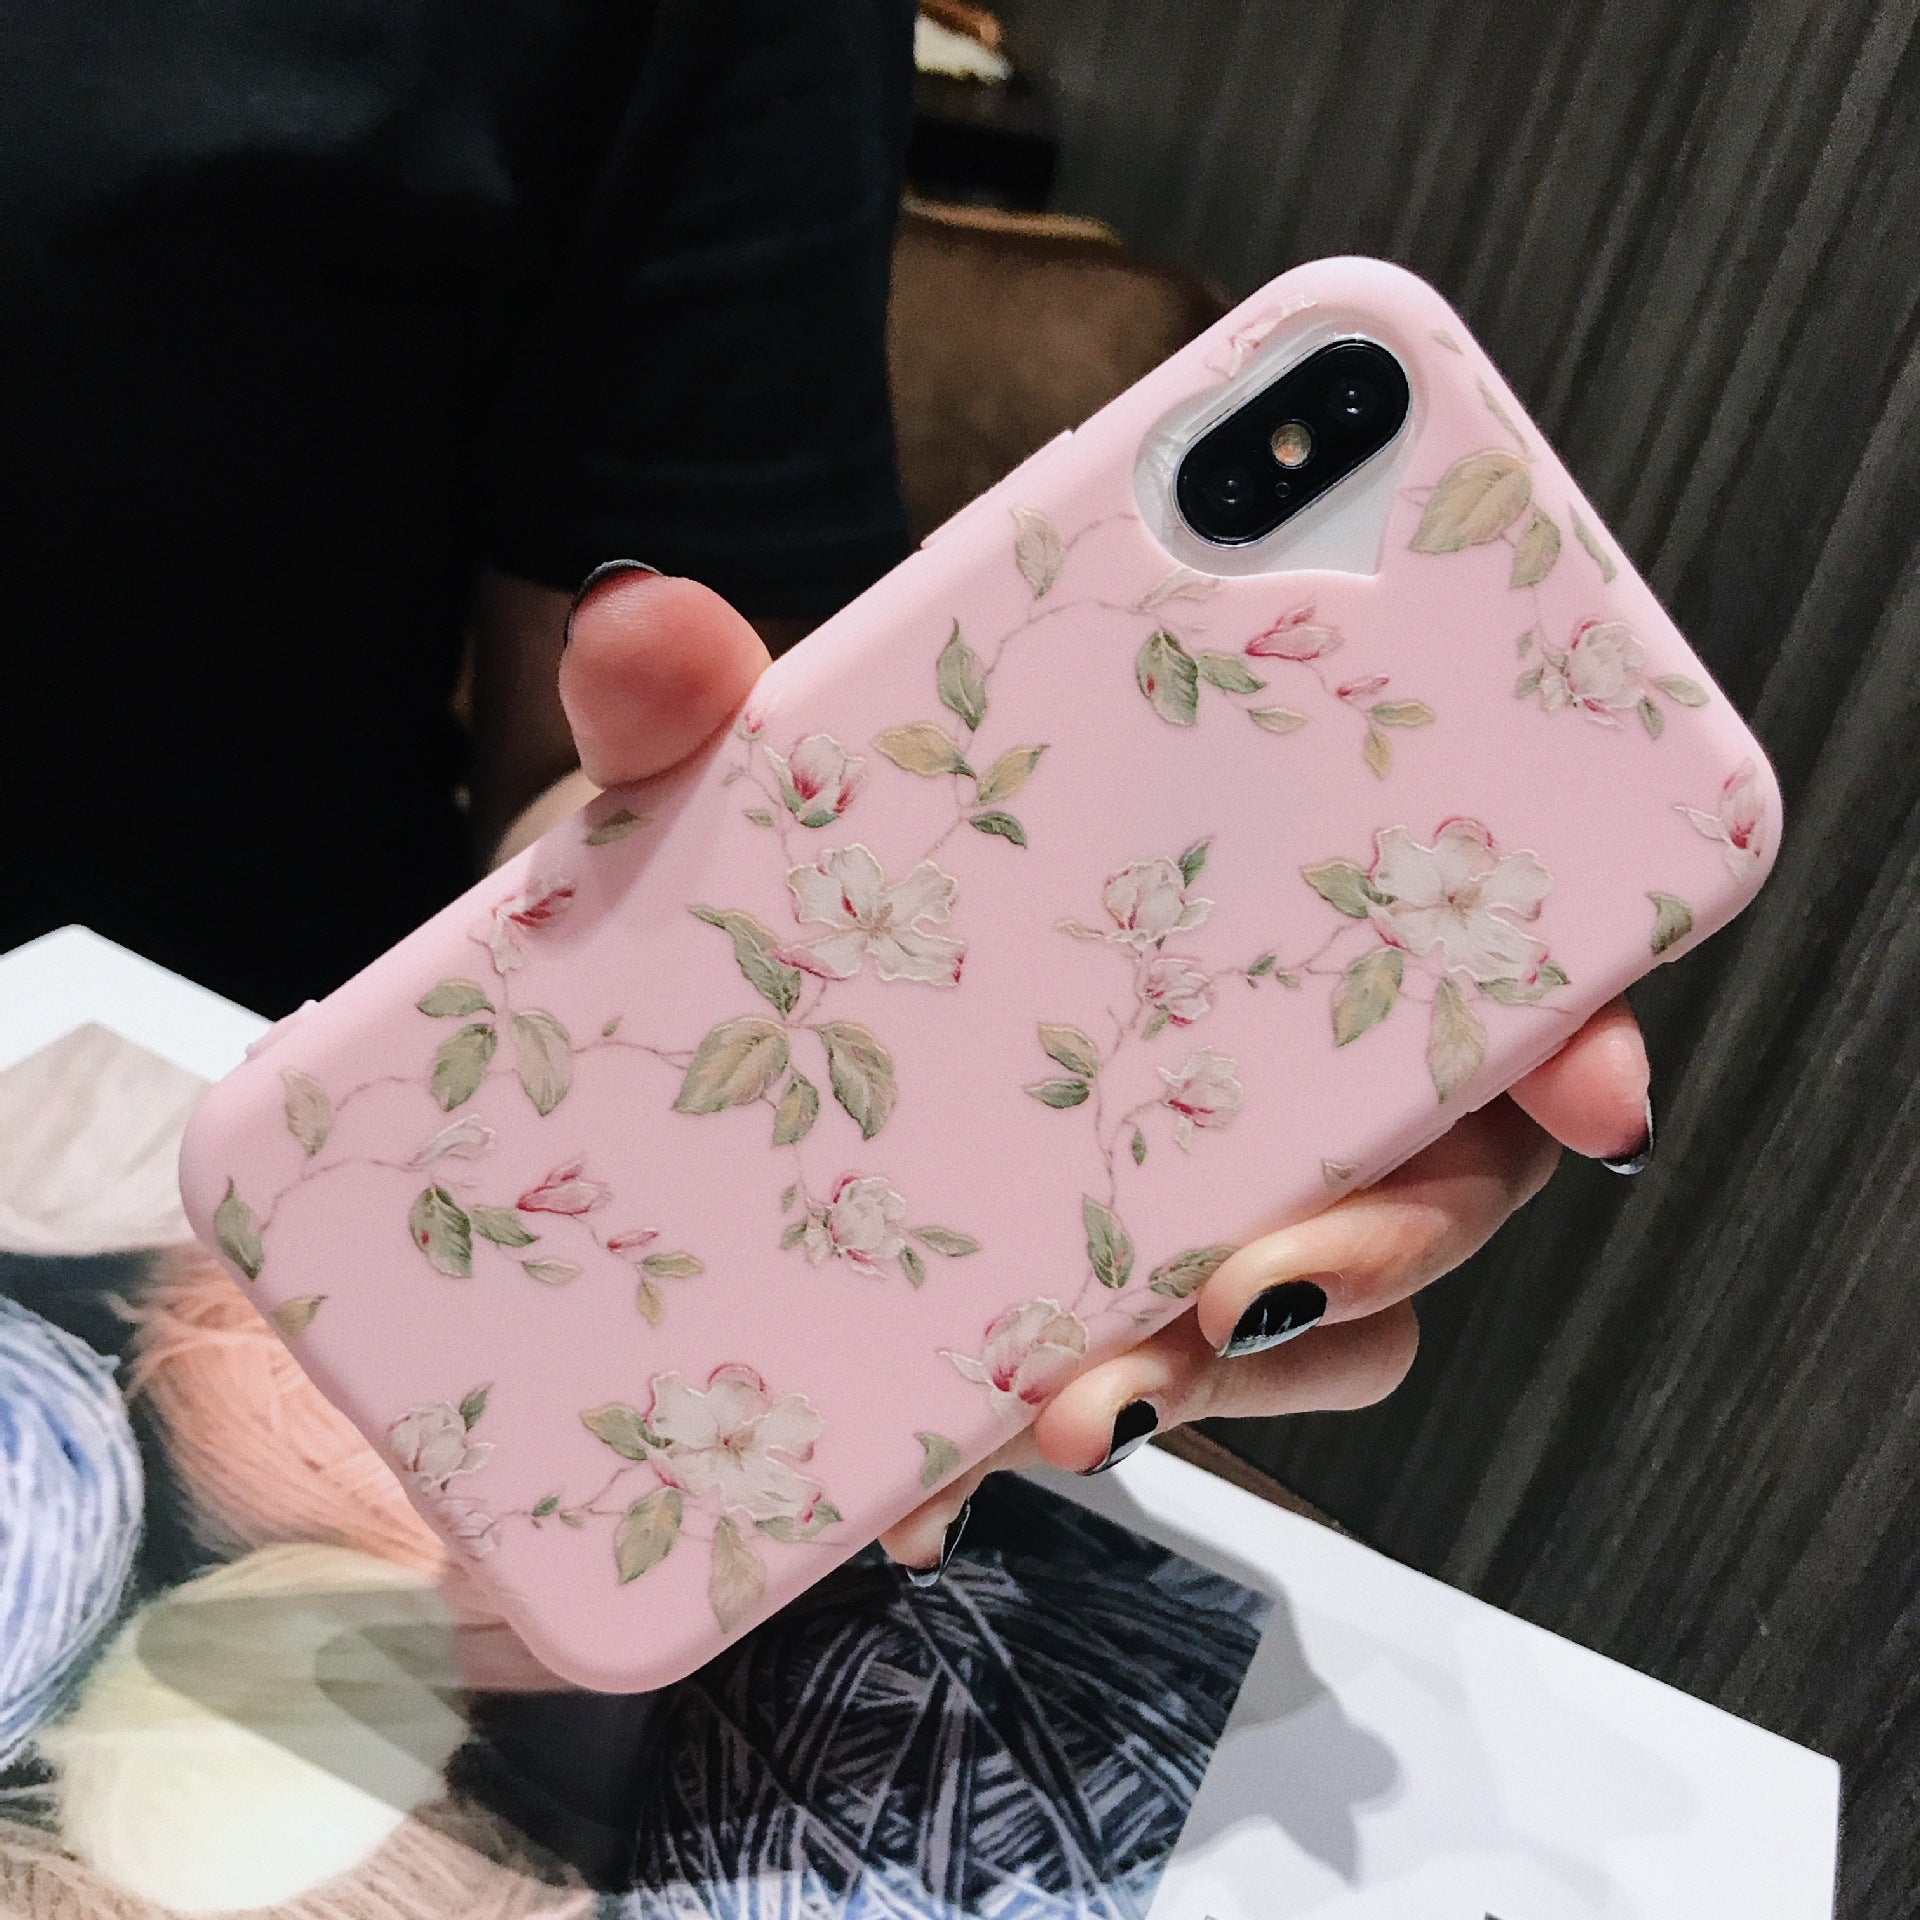 Lovebay Phone Case For Apple iPhone 5 6s 7 Plus 8 Plus Fashion Cartoon Beautiful Flower Soft TPU For iPhone 6 5s SE Phone Case